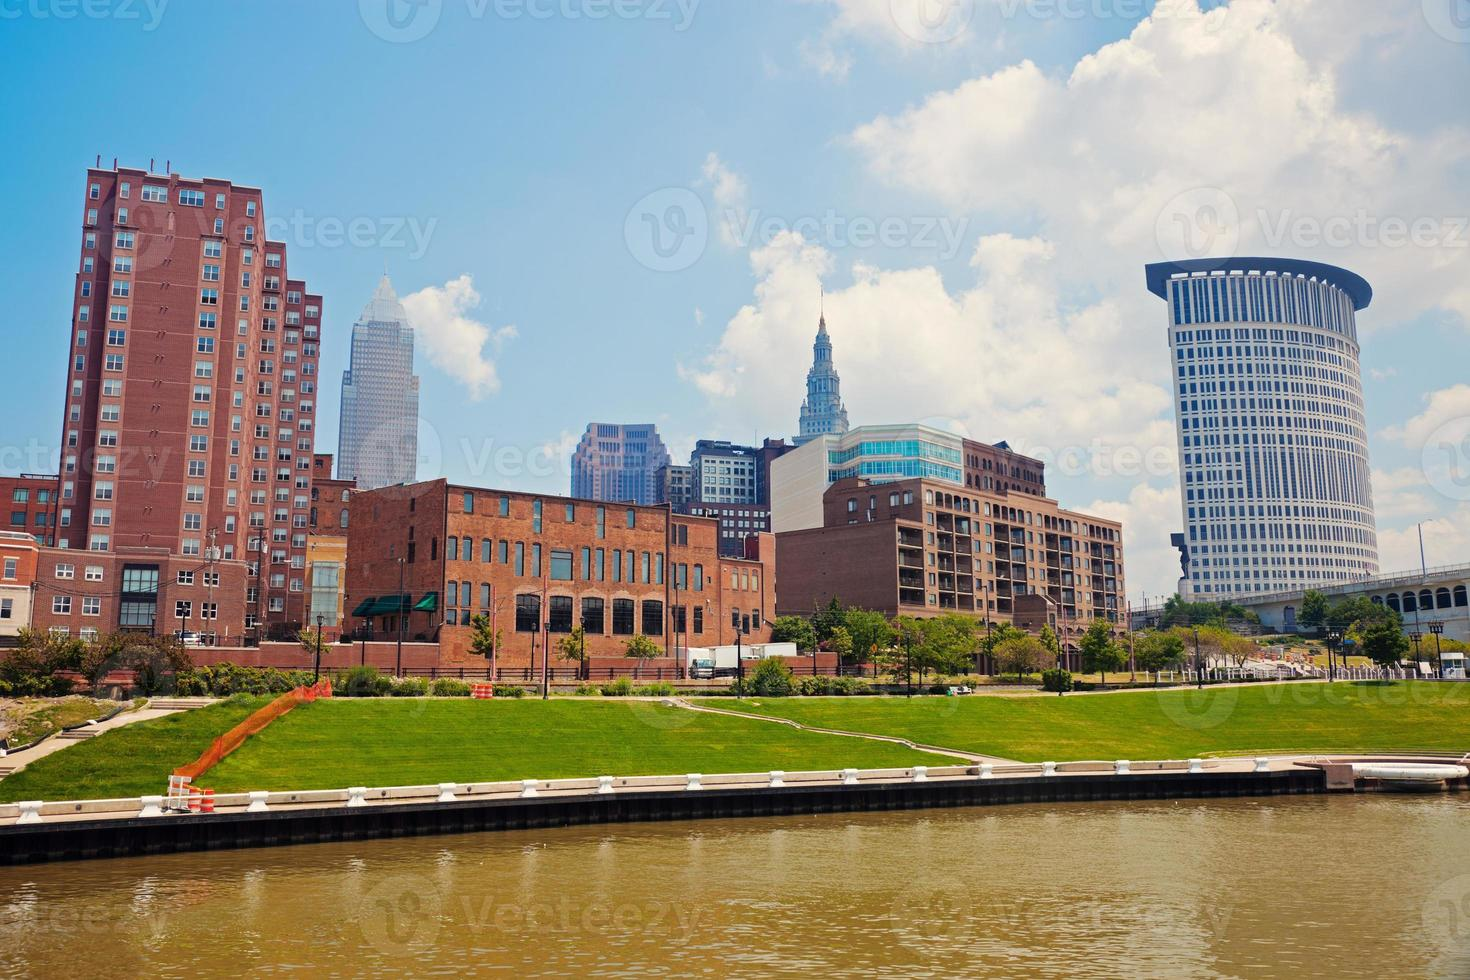 cuyahoga rivier in cleveland foto